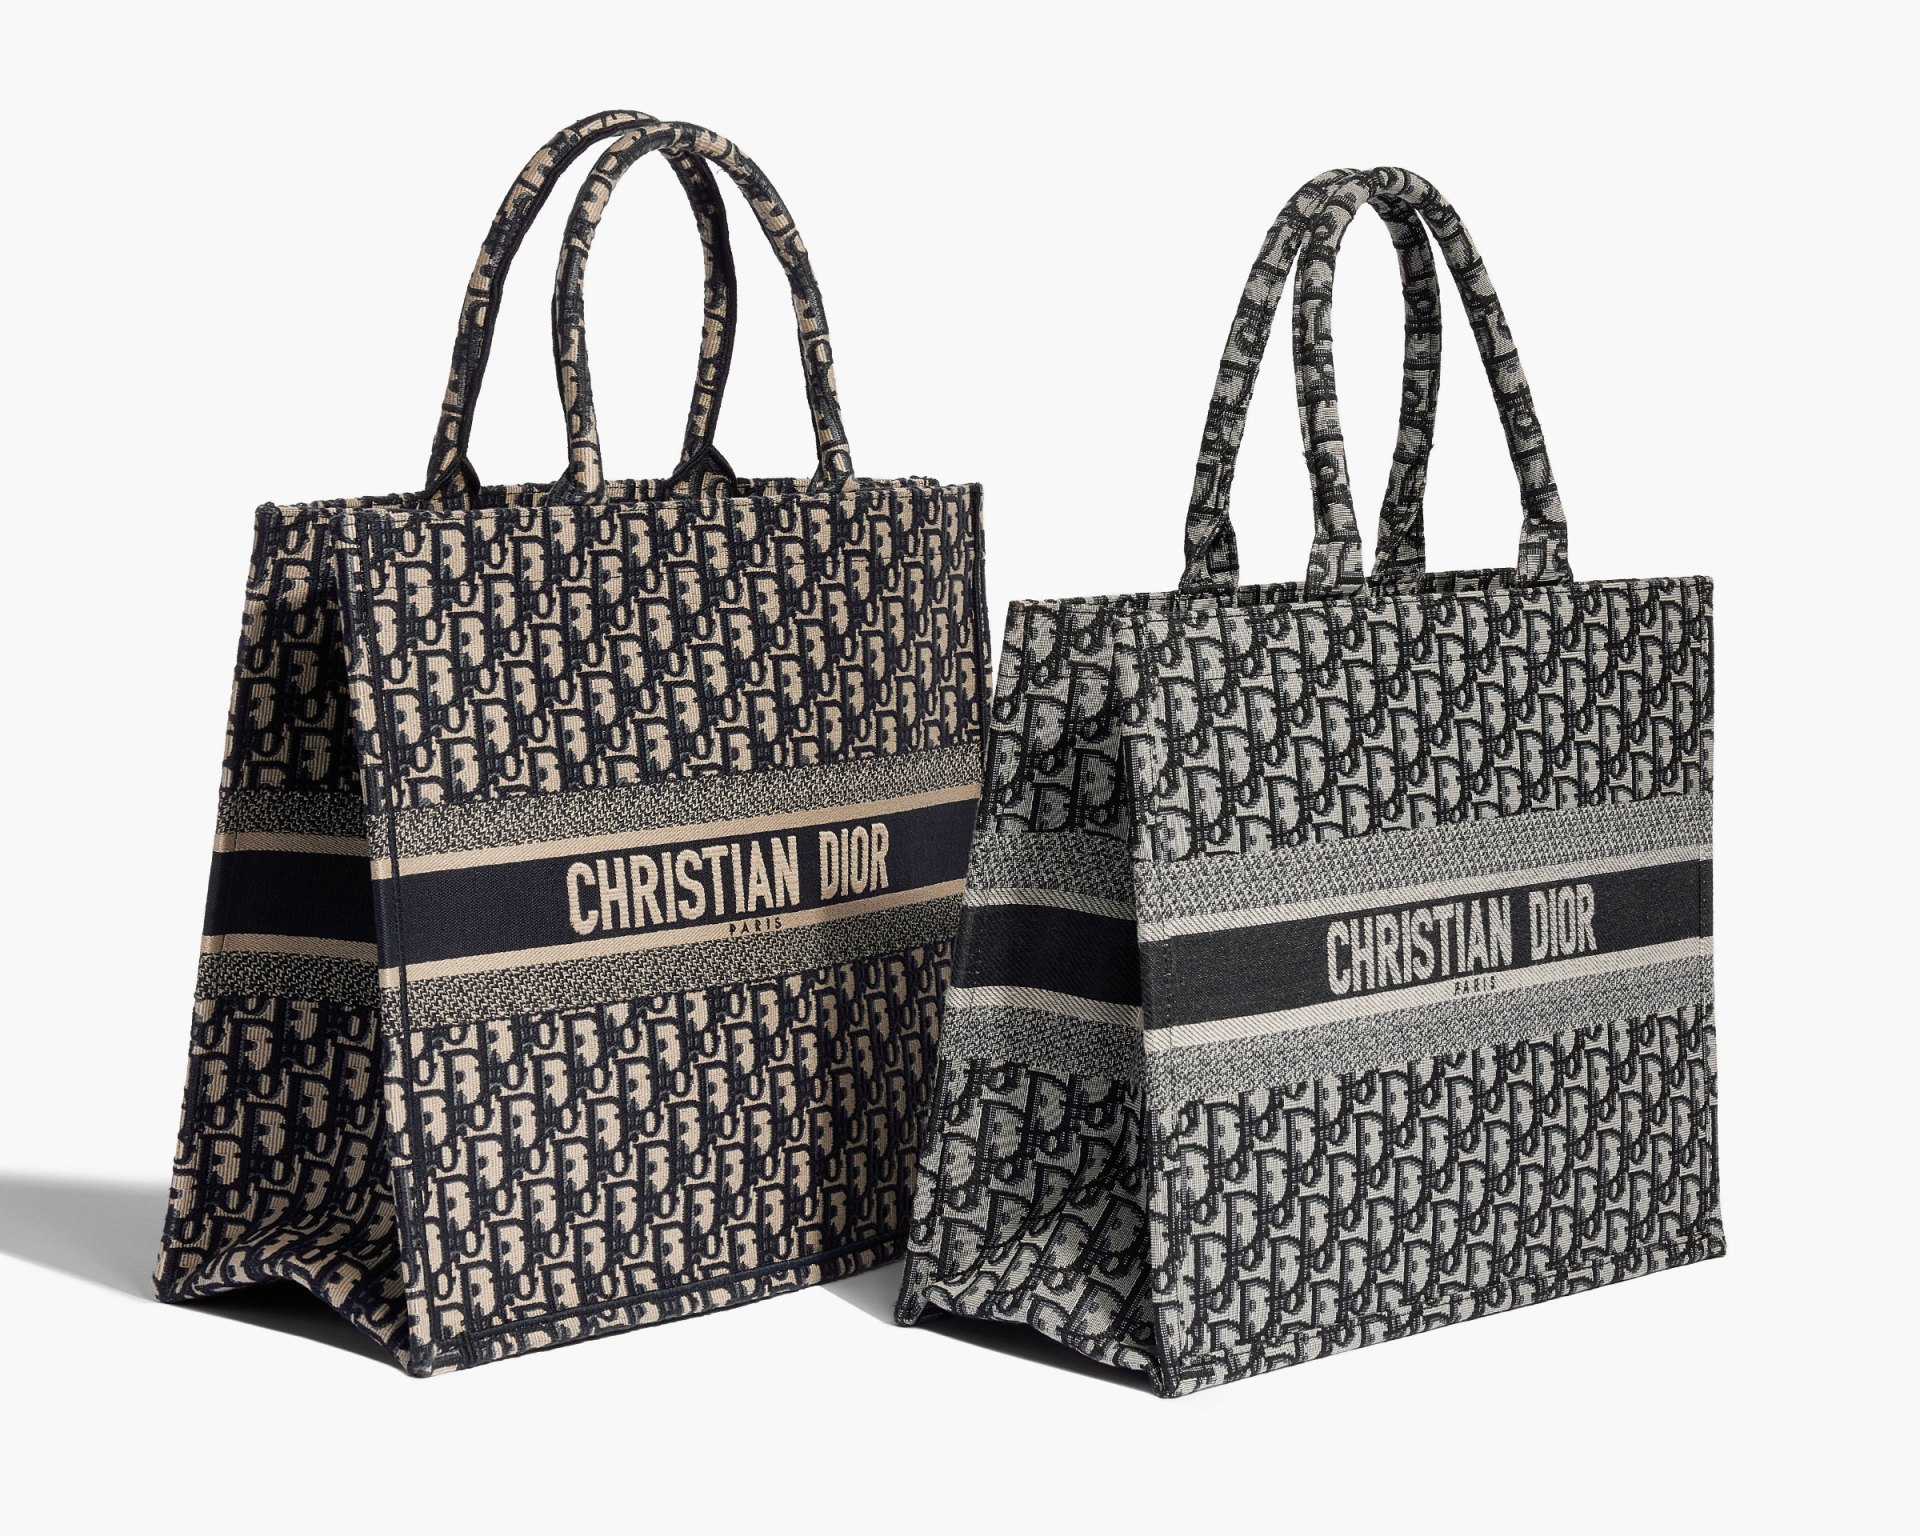 Studio image of real and fake Christian Dior Oblique book totes side by side